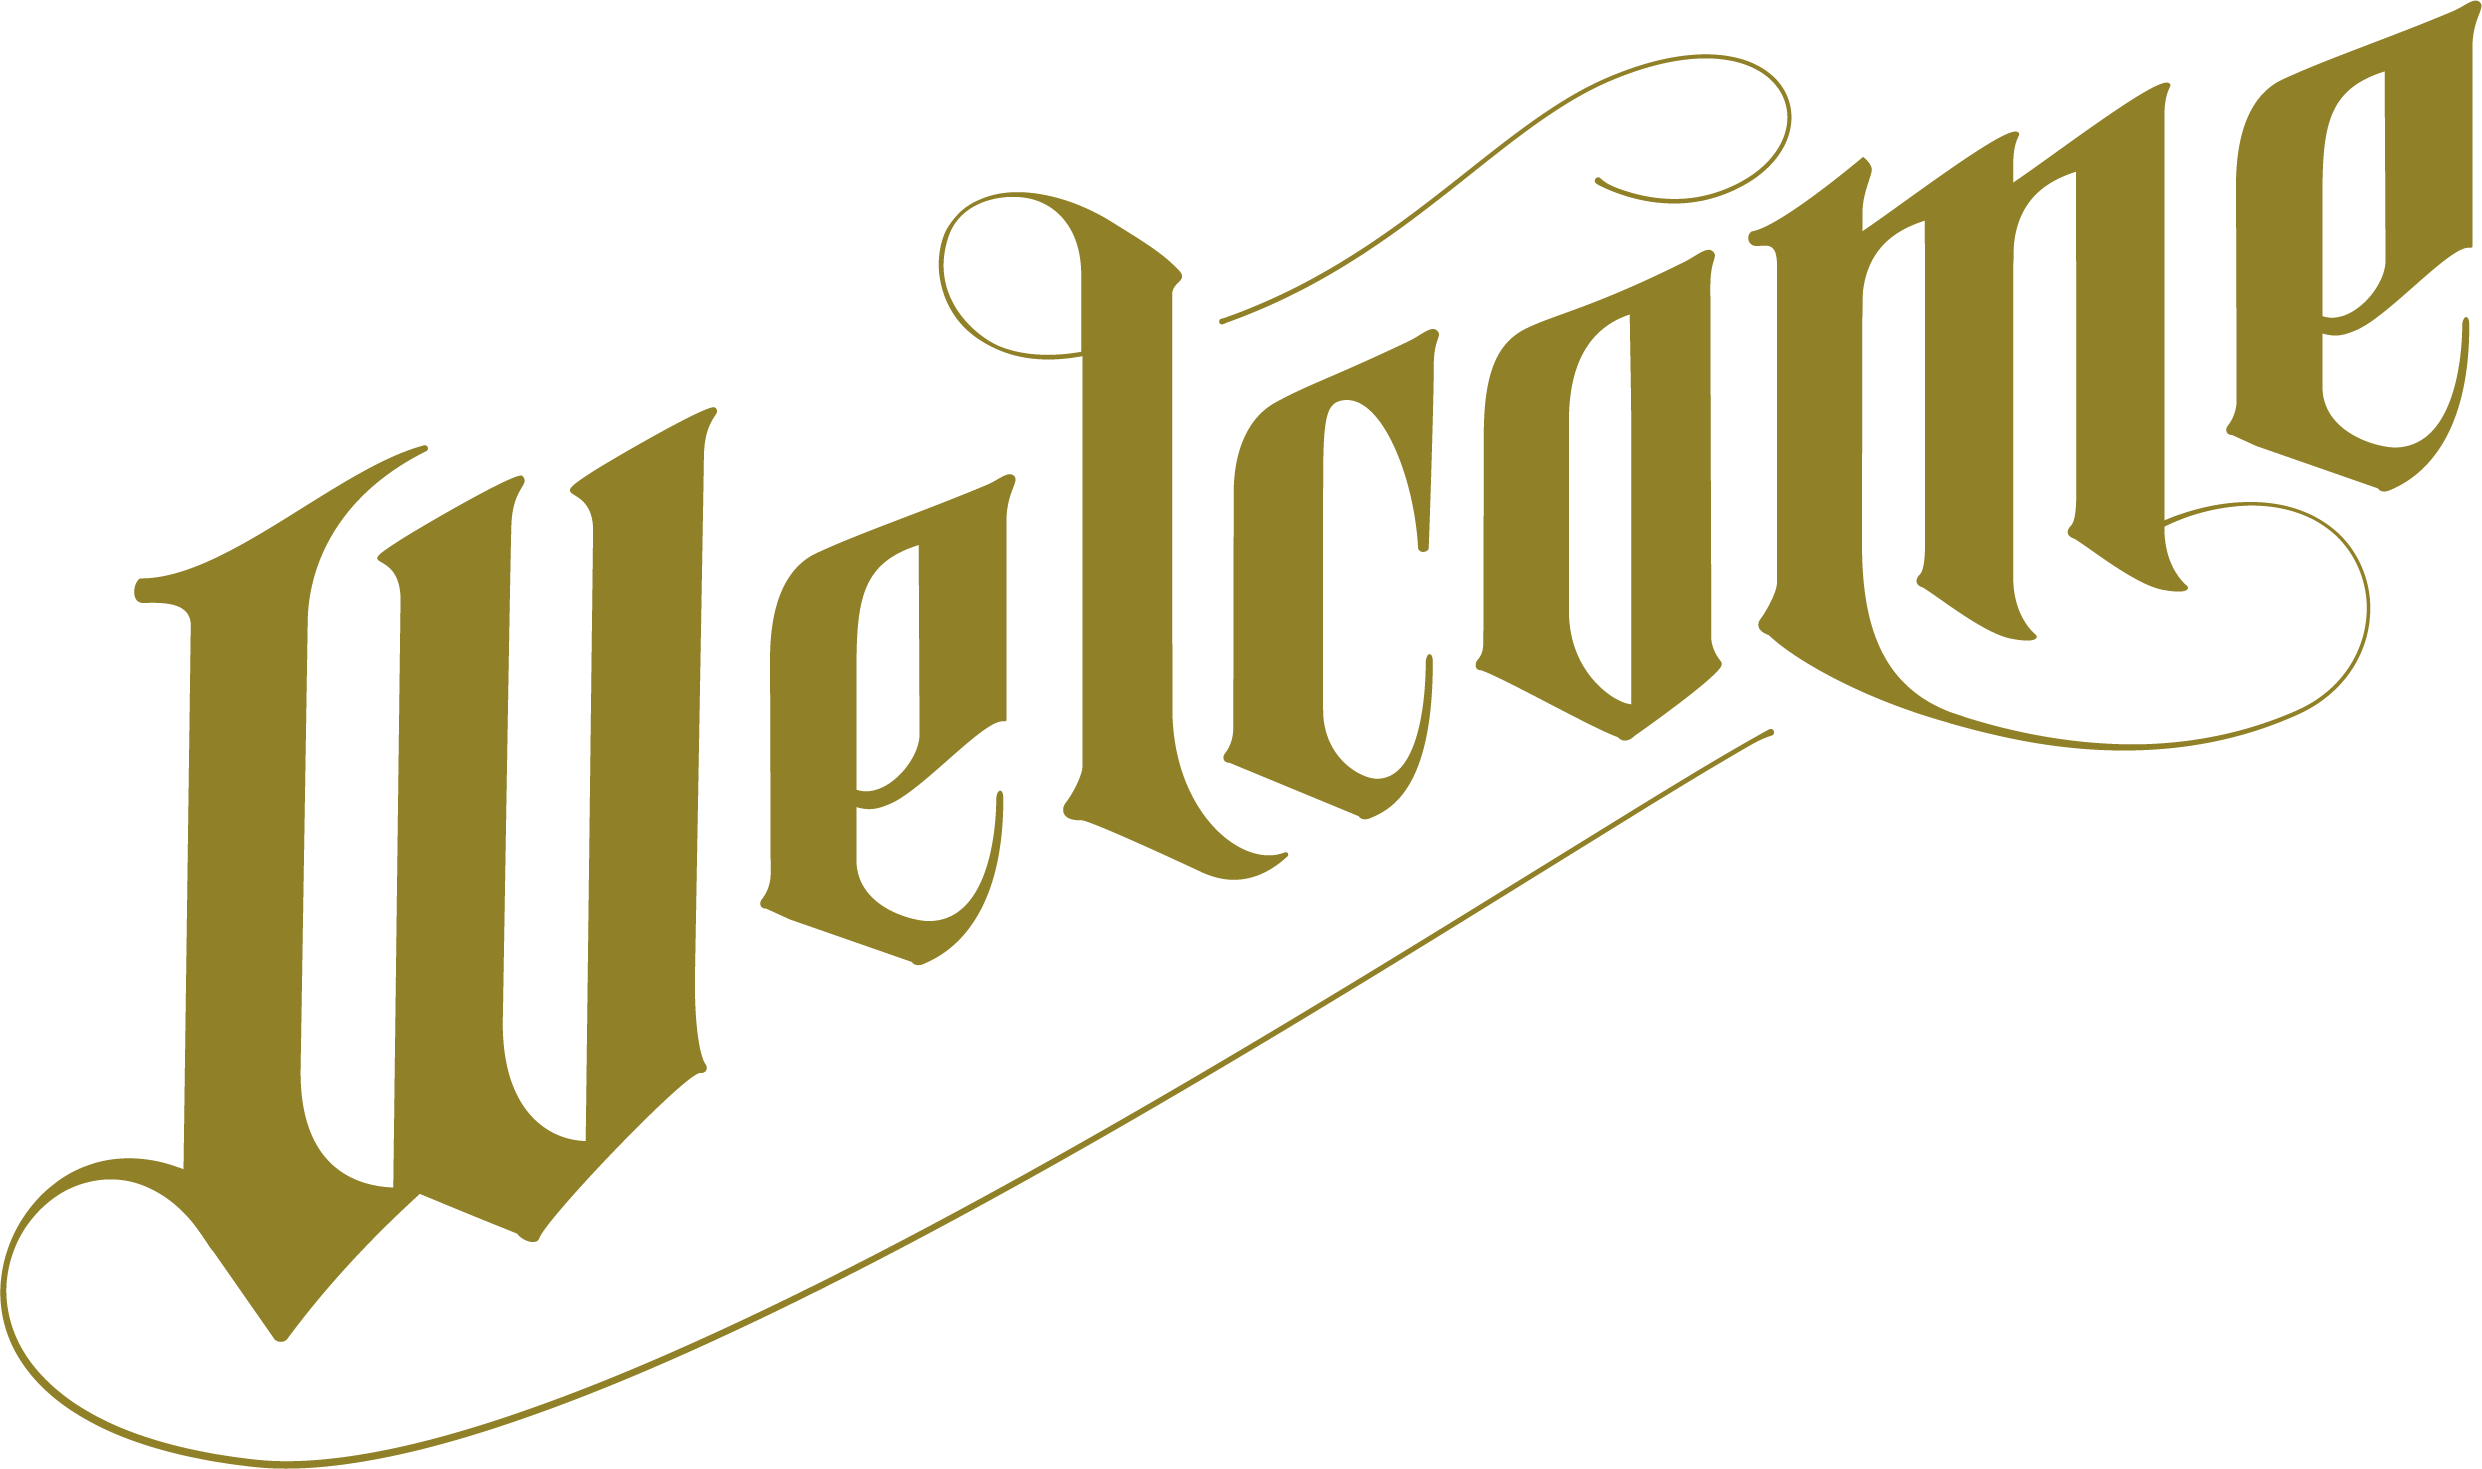 gothic welcome text